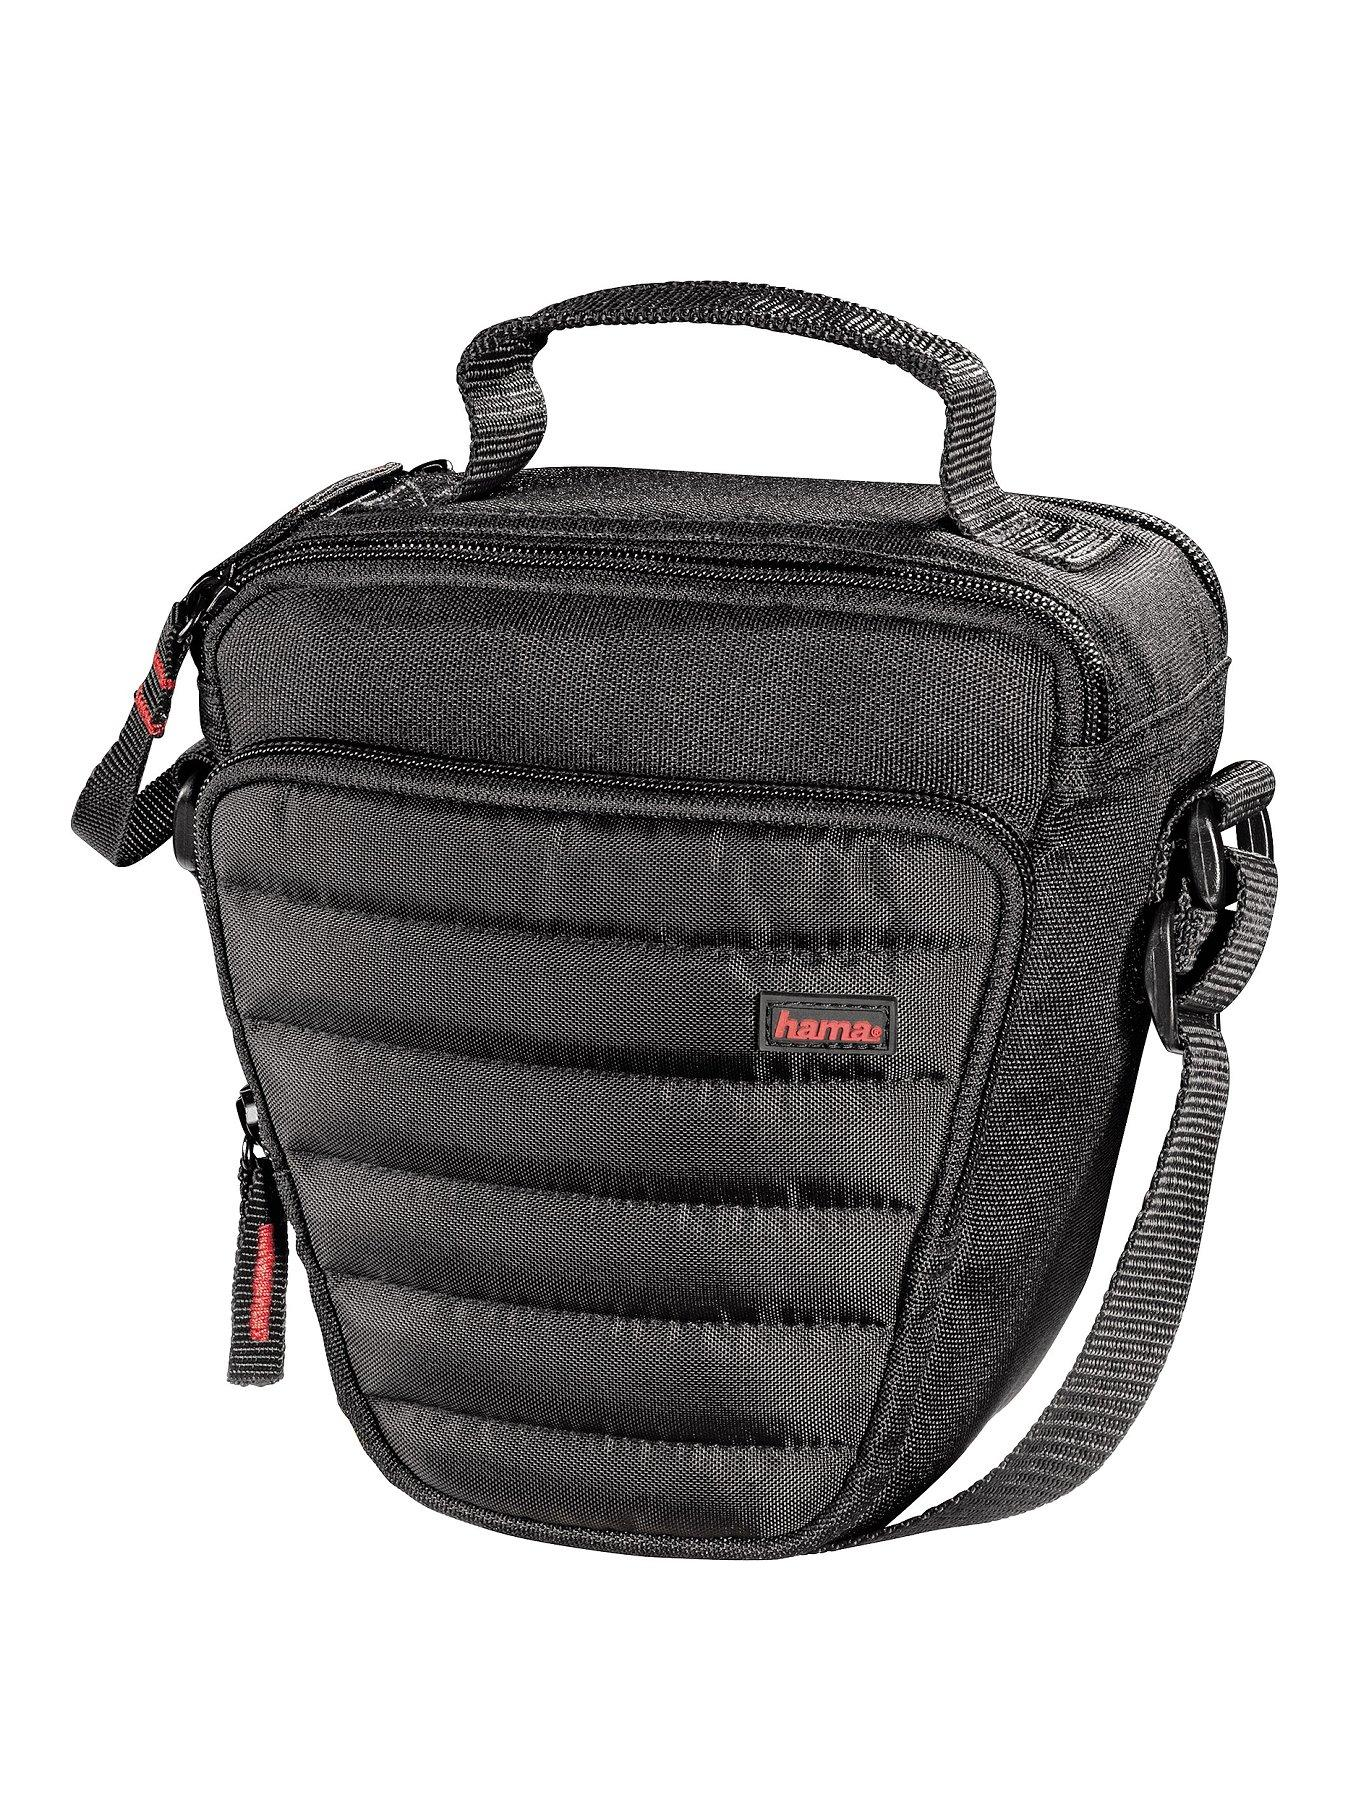 HAMA Syscase 110 Colt Camera Bag at Very, from Littlewoods